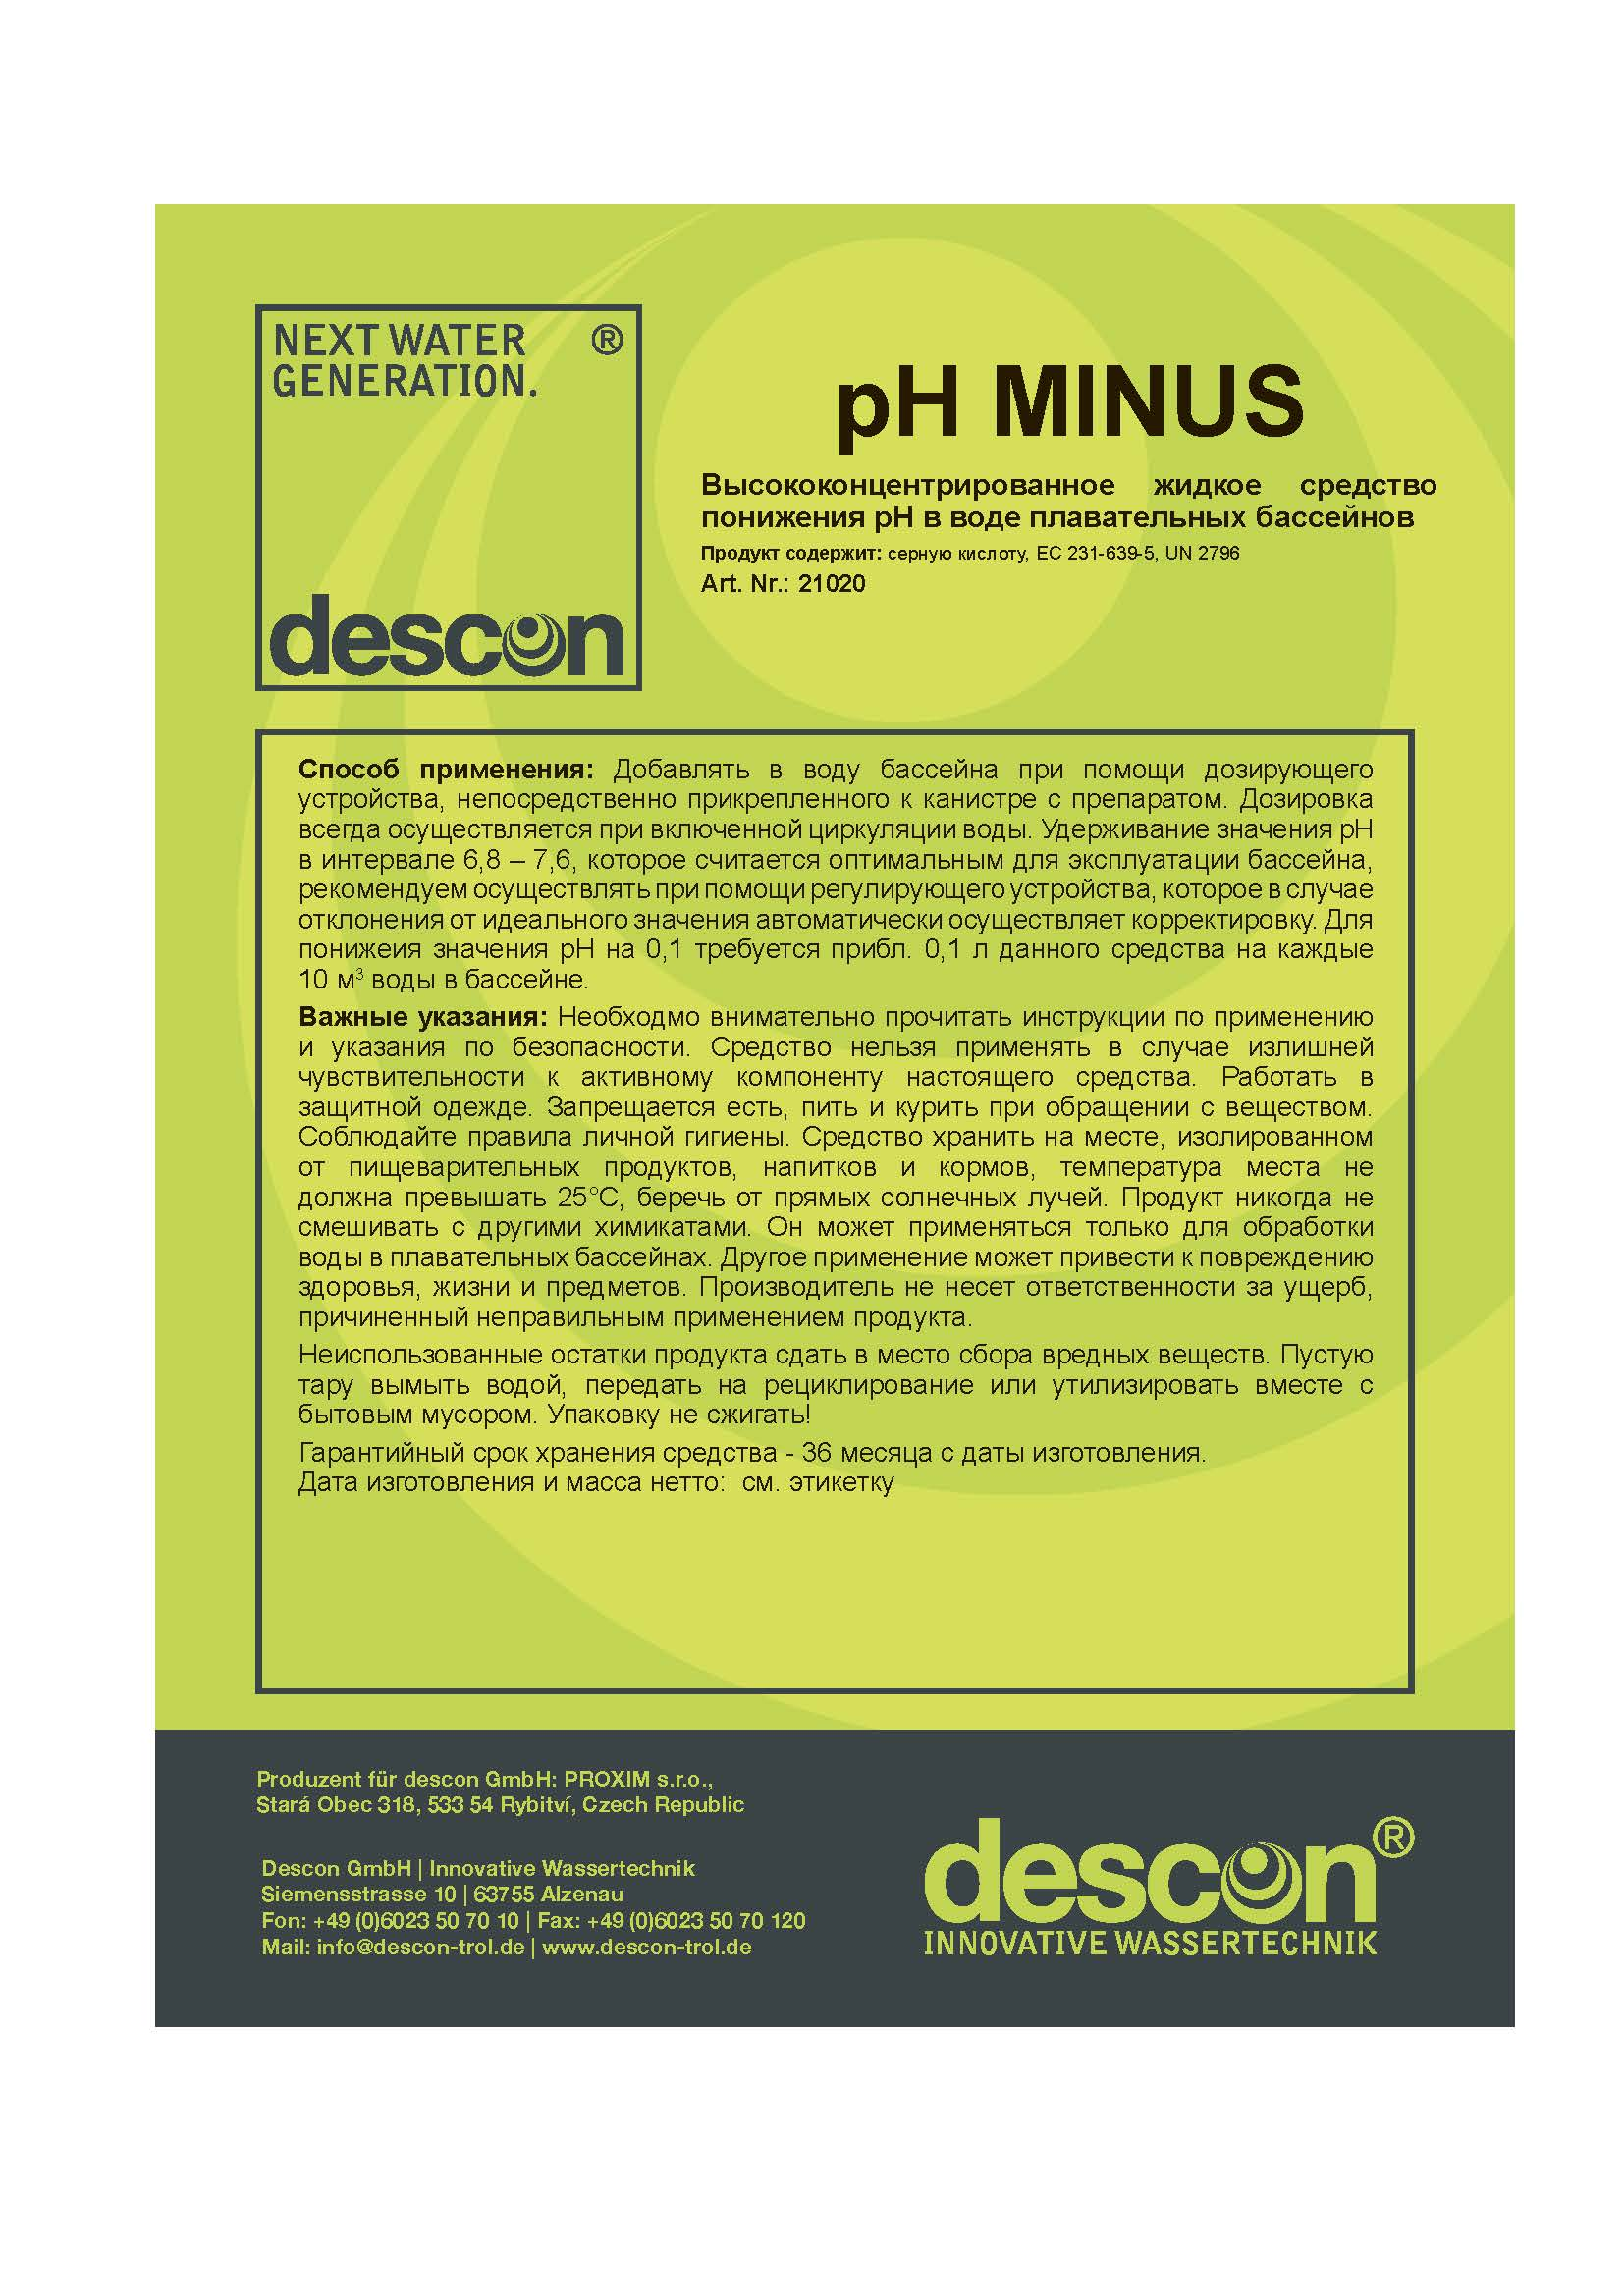 descon_pH-Minus1(1)